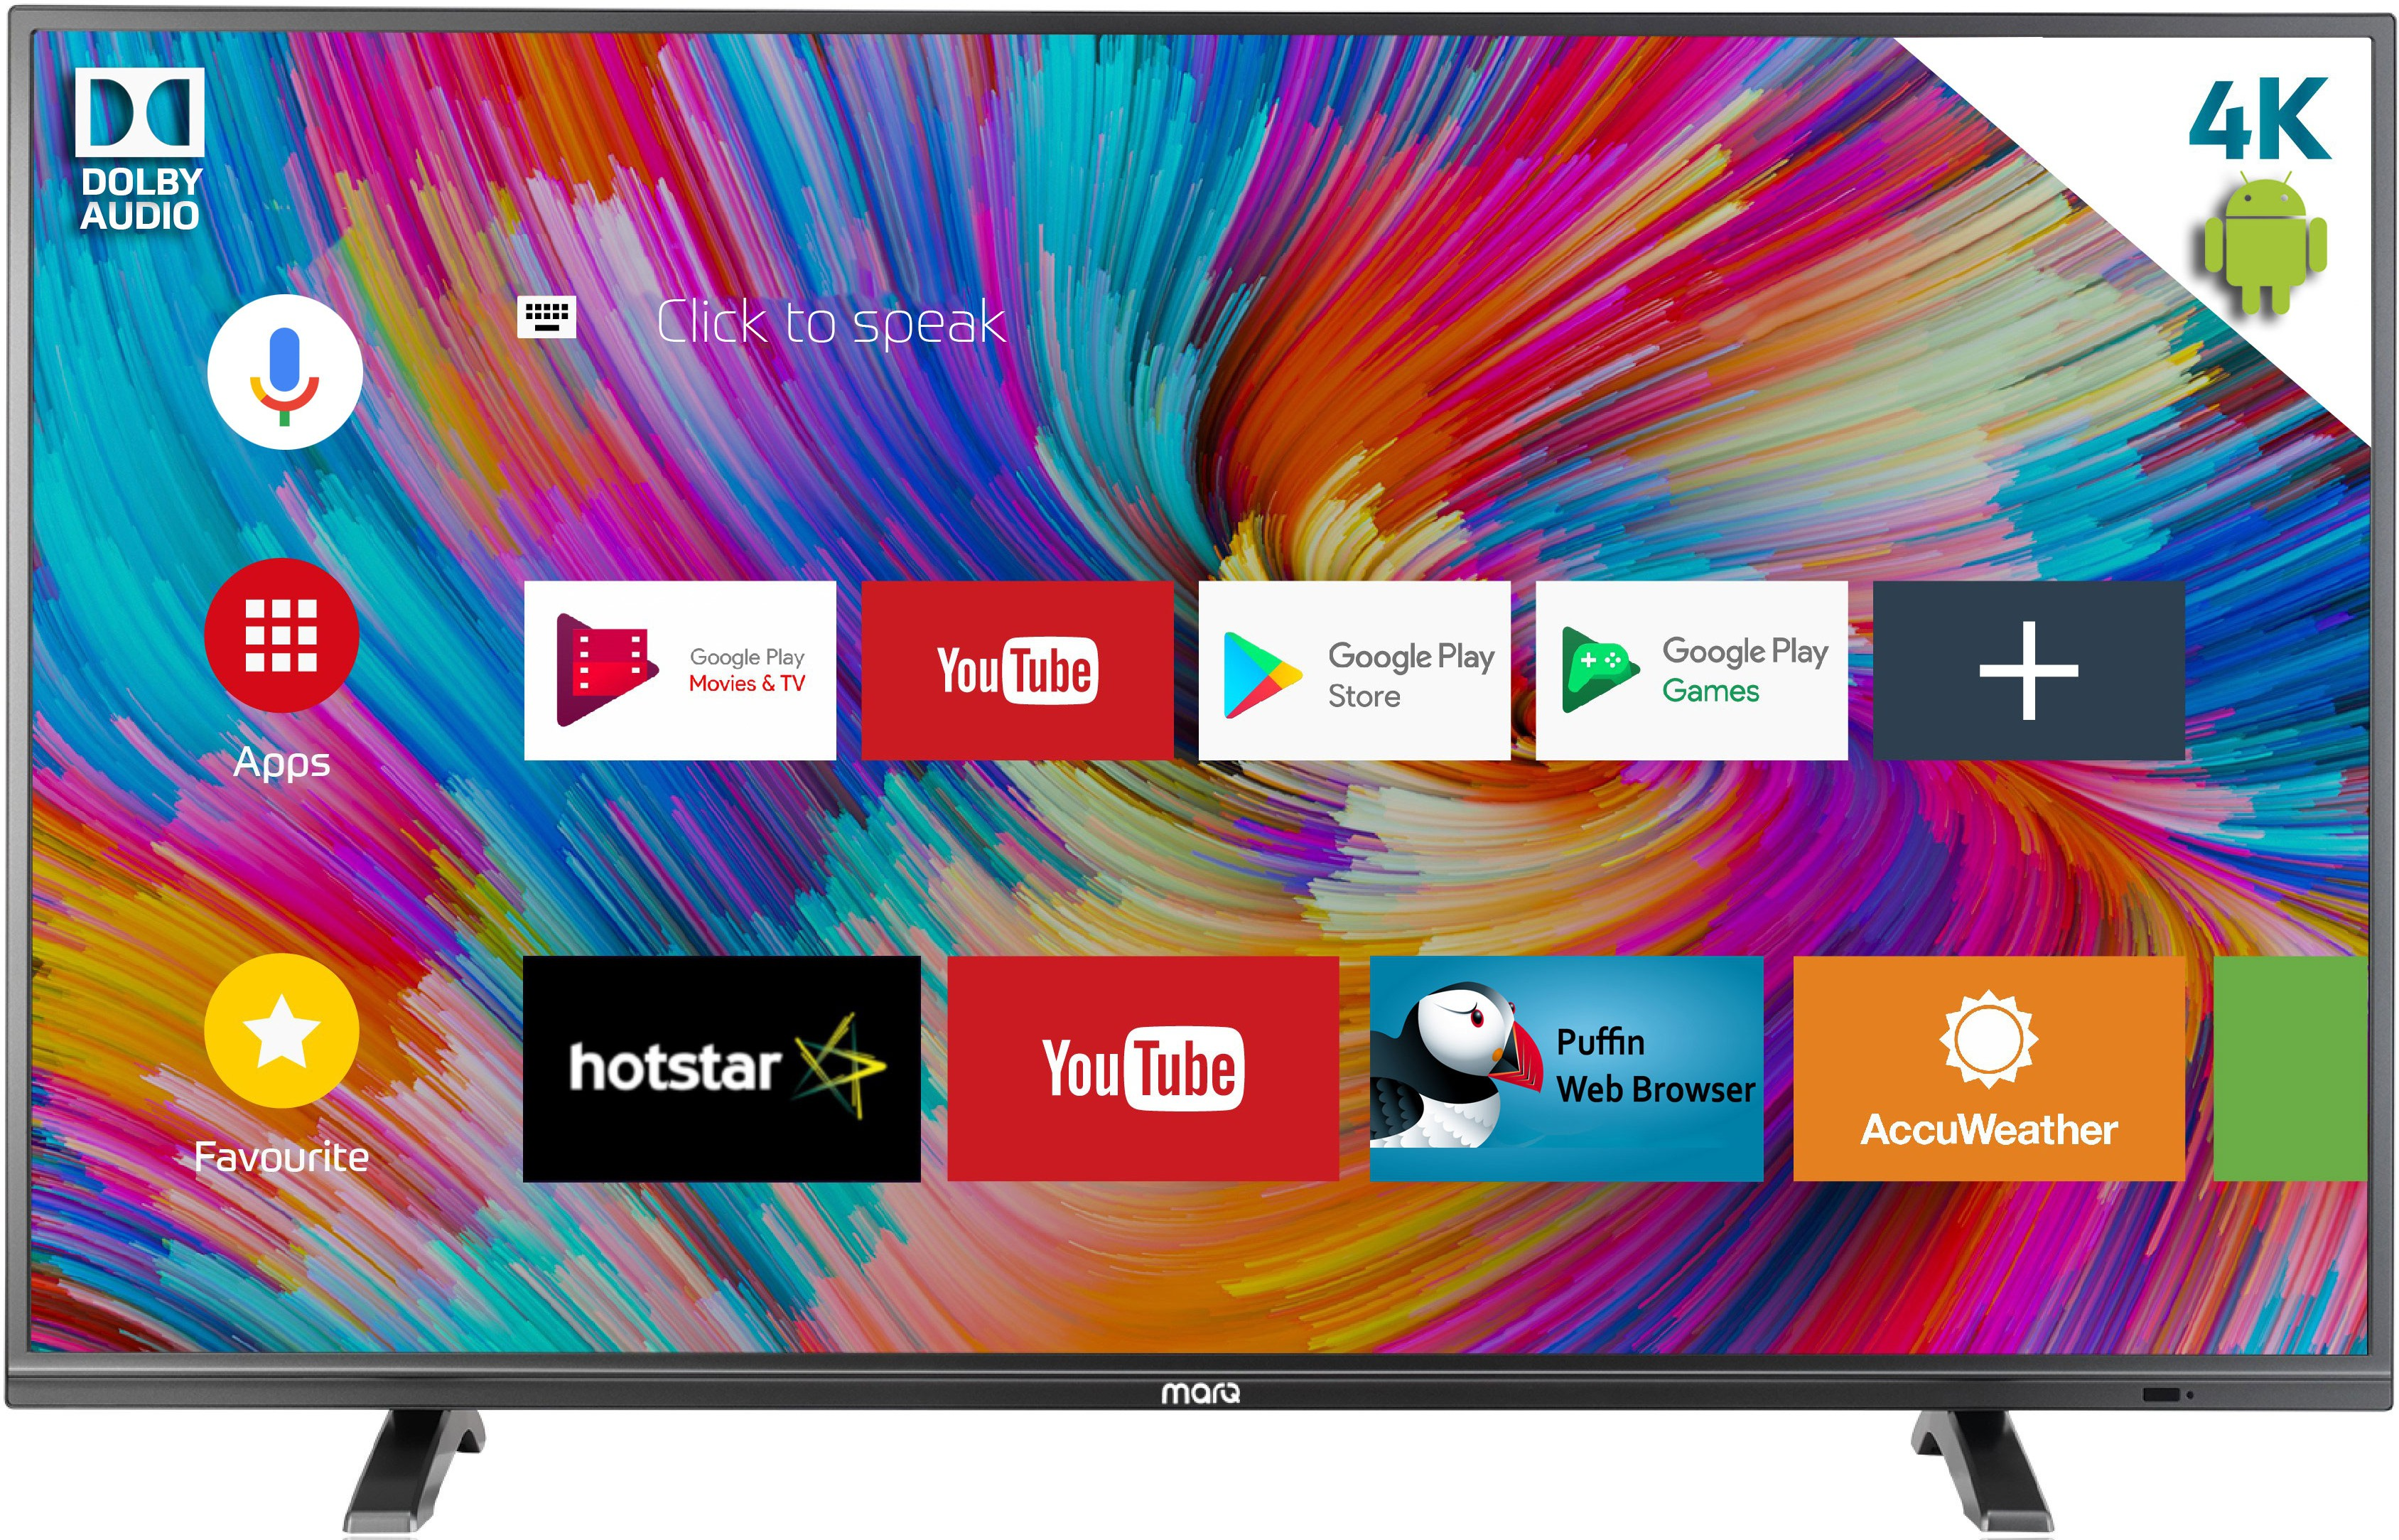 MarQ by Flipkart Dolby Certified Android (65 inch) Ultra HD (4K) Smart LED TV Image